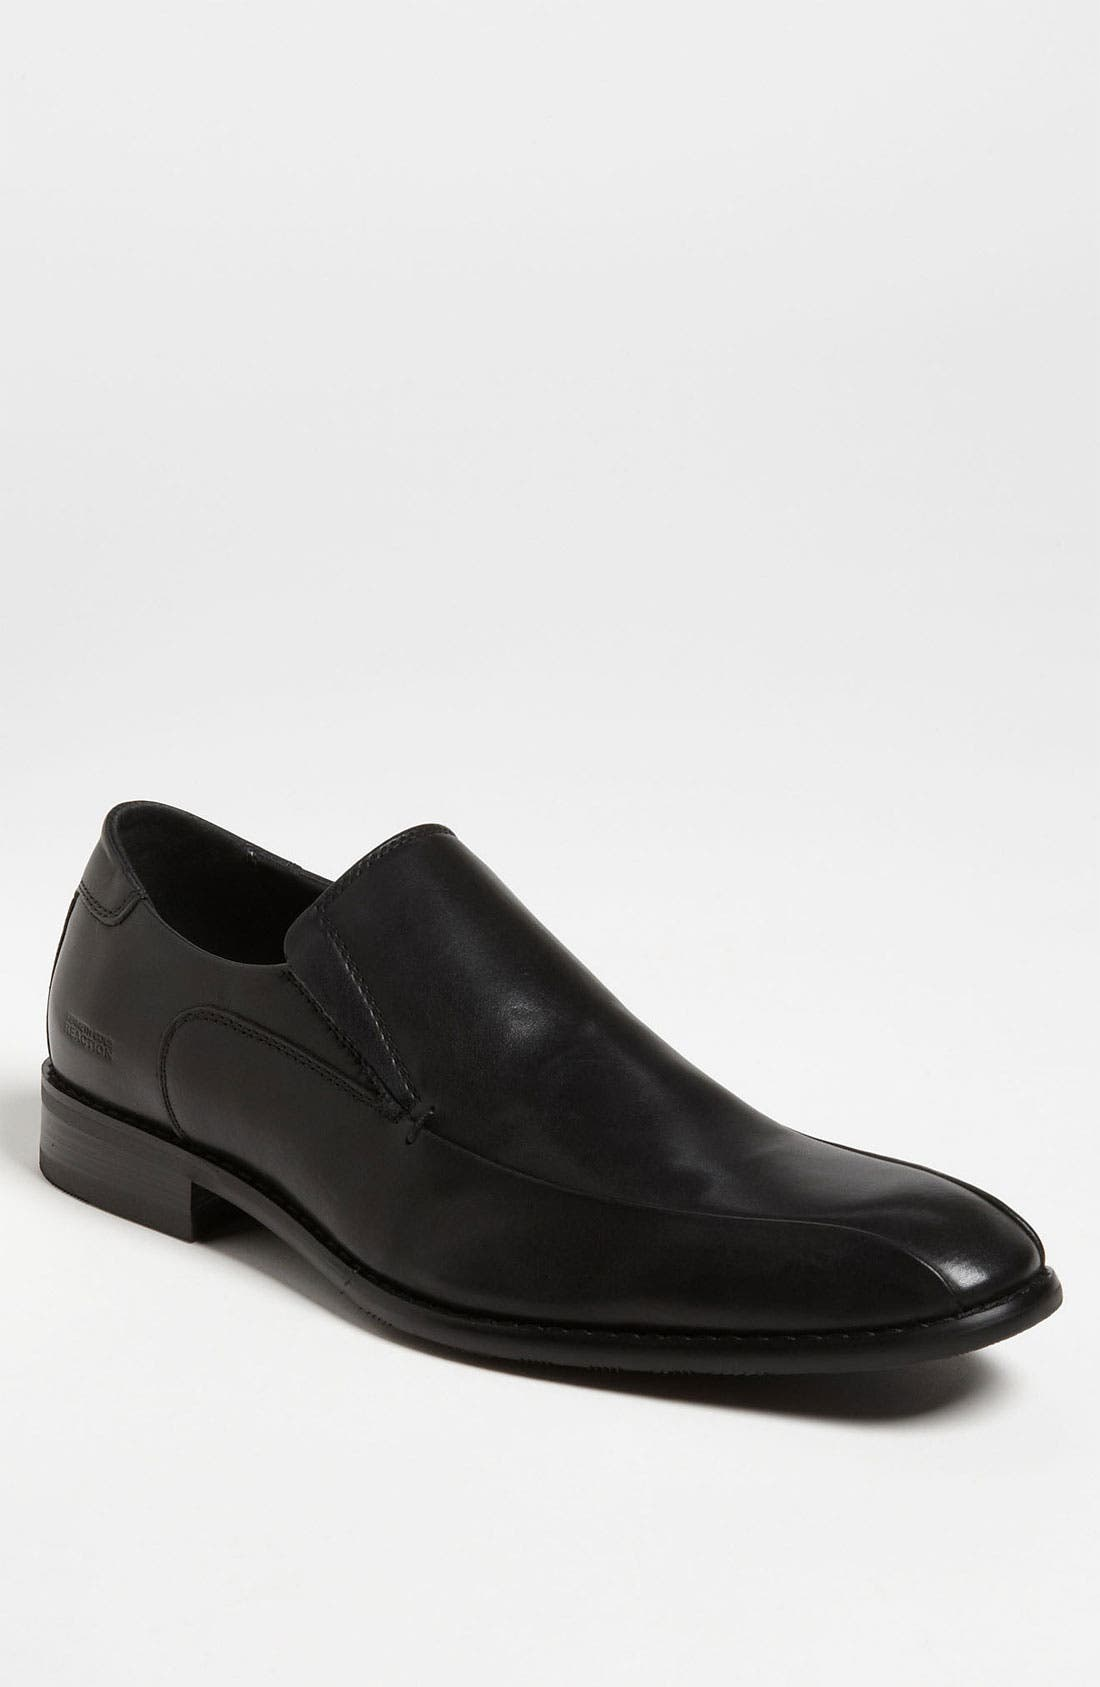 Alternate Image 1 Selected - Kenneth Cole Reaction 'In Focus' Venetian Loafer (Online Exclusive)